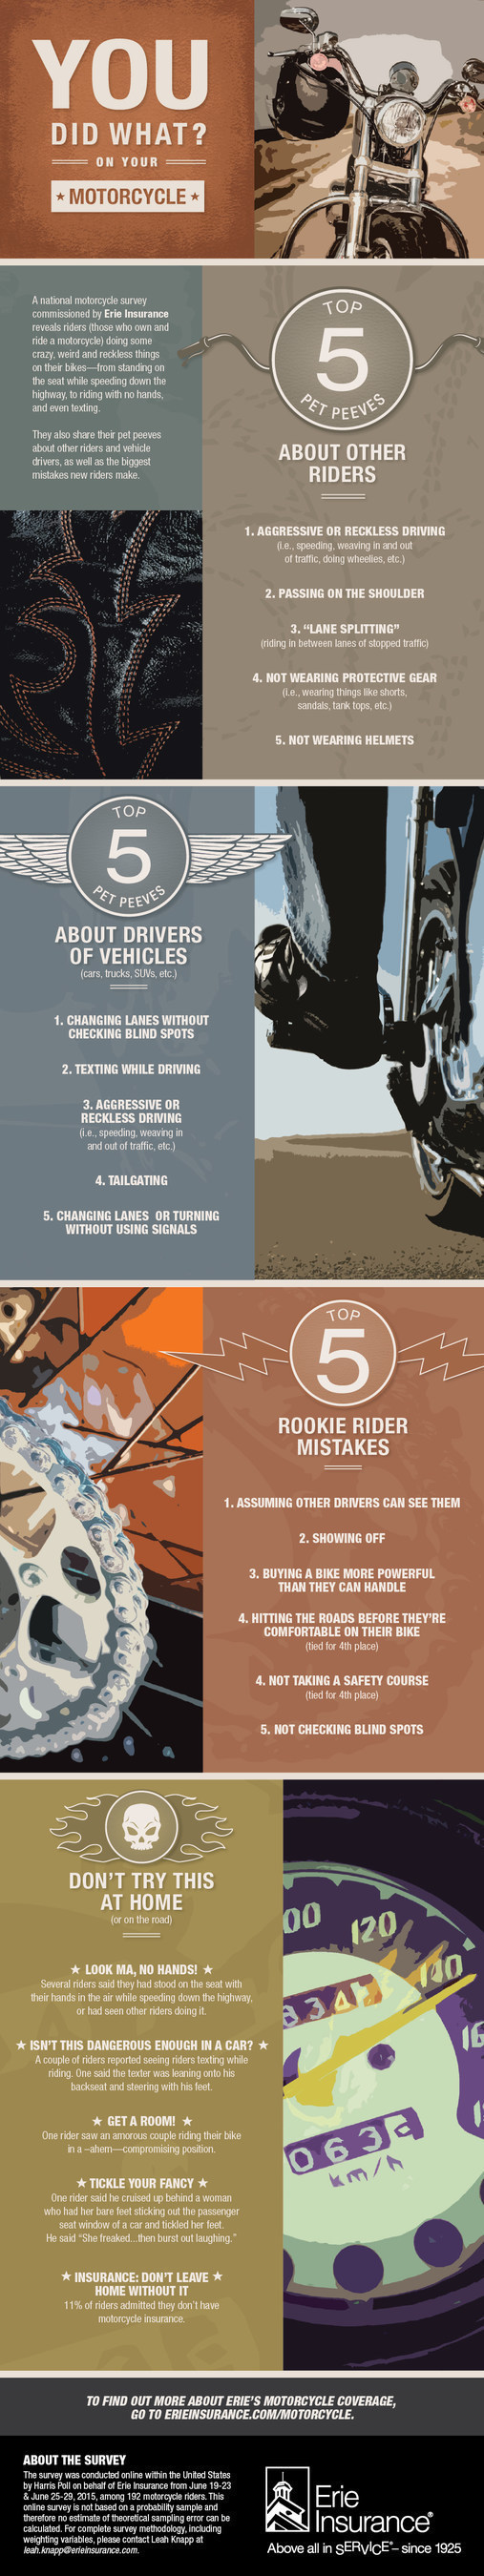 Erie Insurance motorcycle survey reveals riders' top 5 pet peeves. The survey also found riders doing some ...